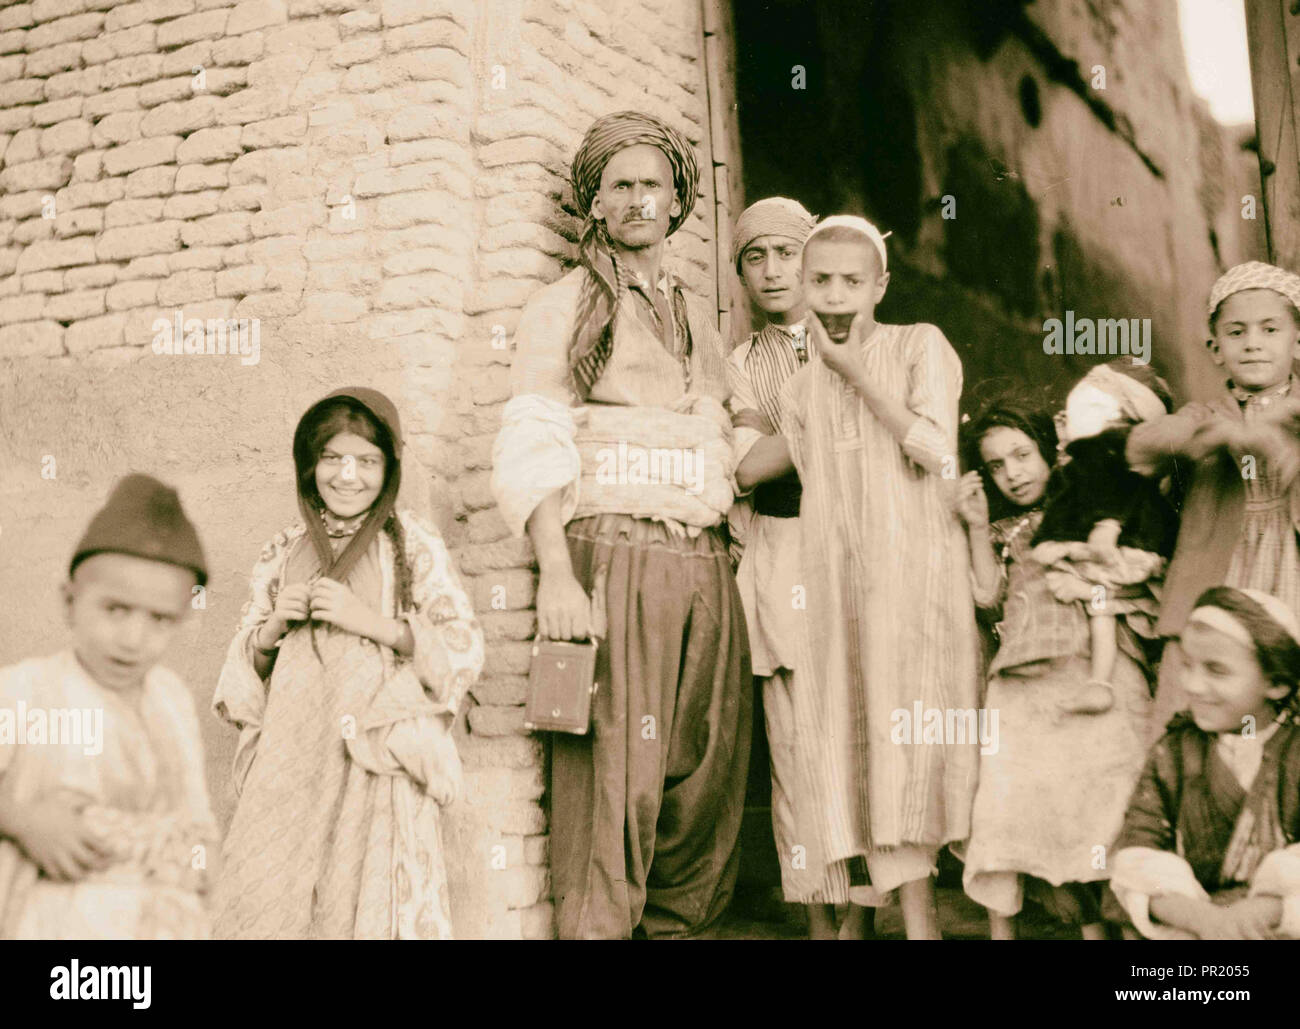 Iraq. Arbela. (Erbil). Center of Ishtar cult in Assyrian period, 2200 B.C. Typical group man, boys, and girl. 1932, Iraq, Irbīl - Stock Image